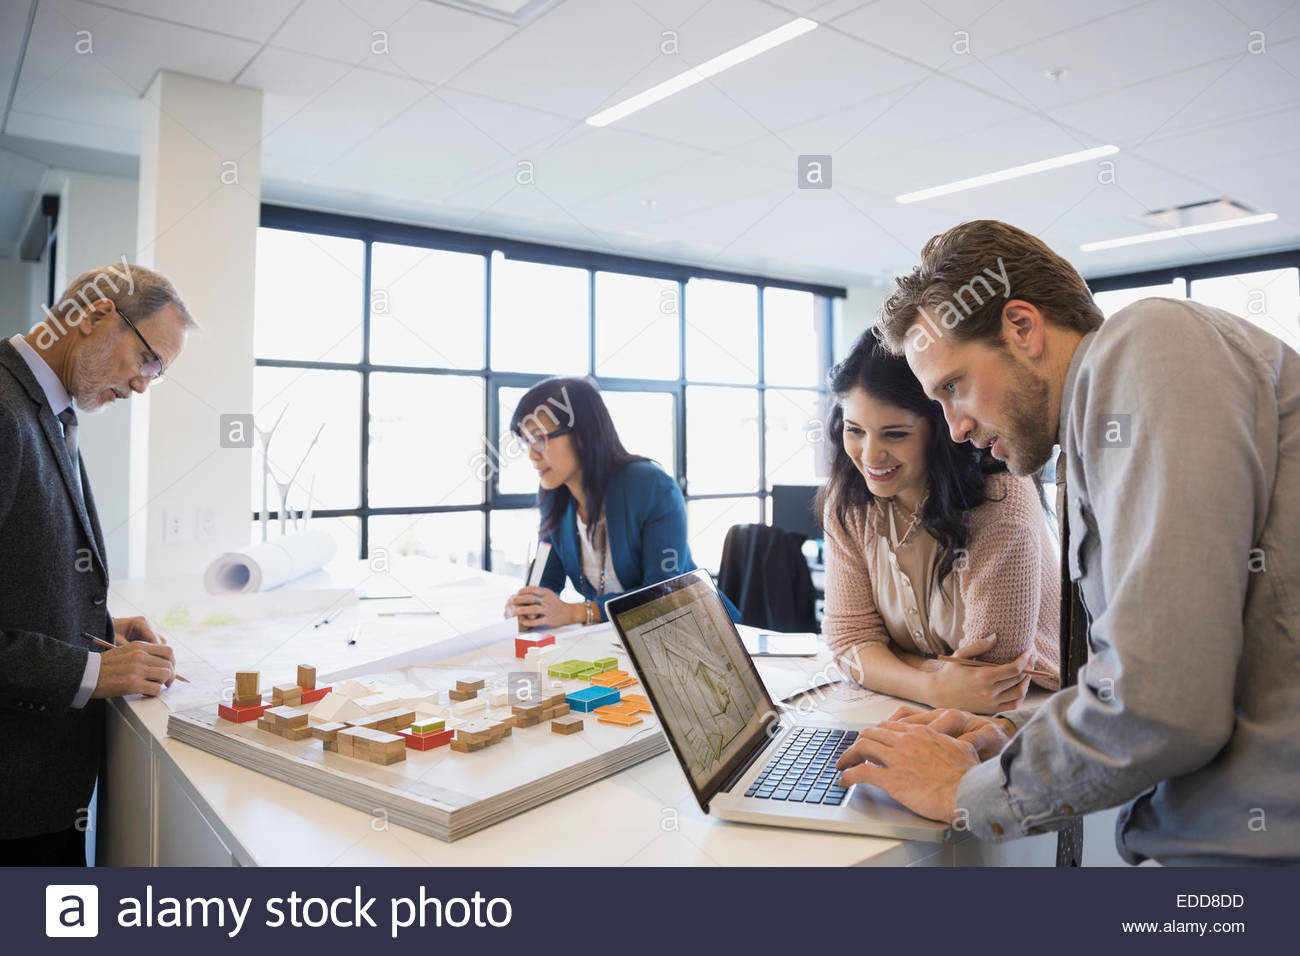 Architects working on laptop near model in office - Stock Image